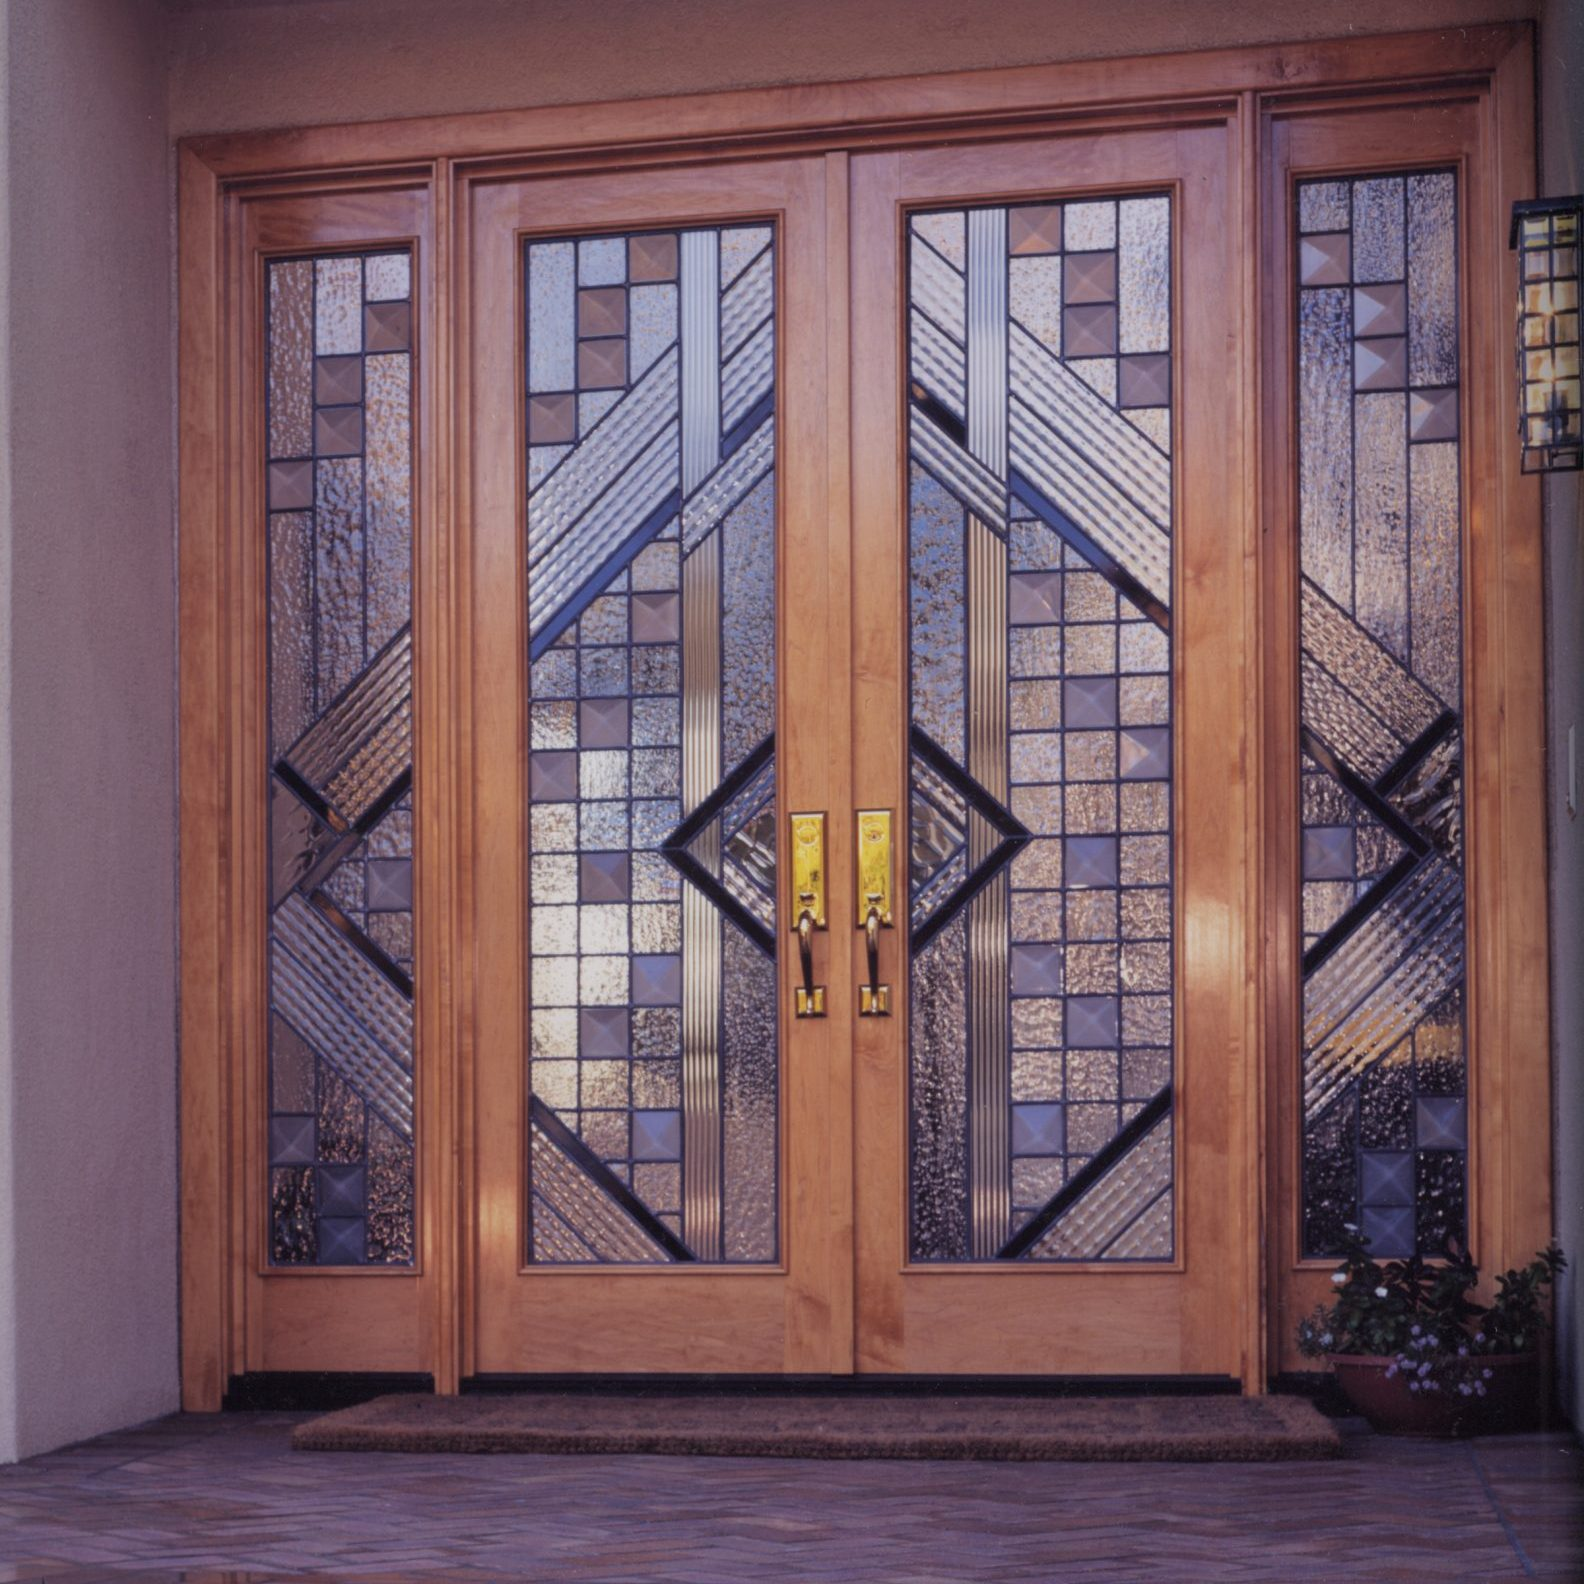 7.contemporary.leaded.glass